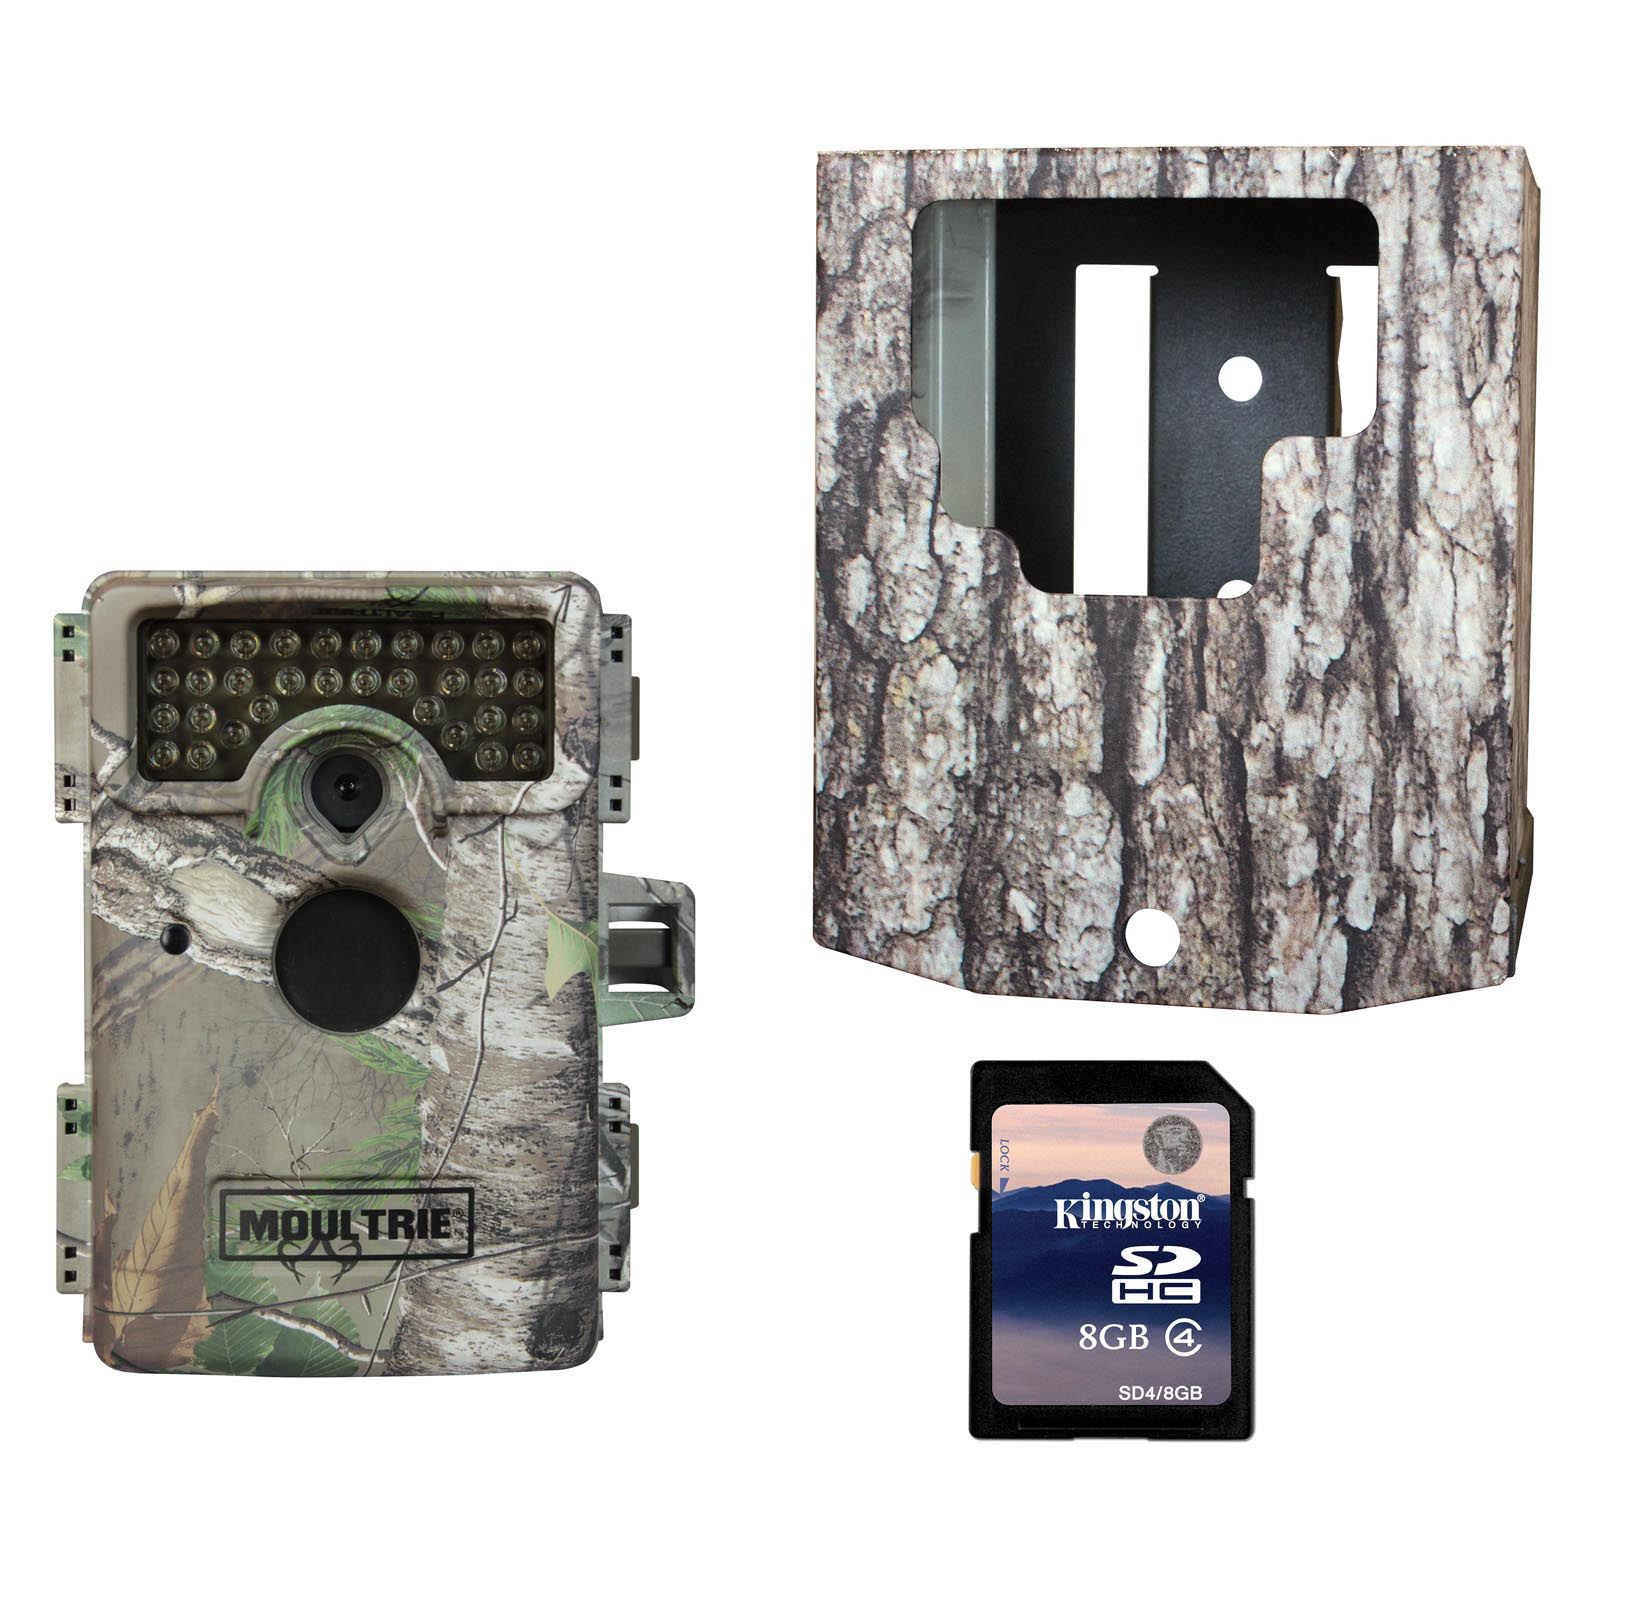 Moultrie M-1100i No Glow Infrared Trail Game Camera + Security Box & SD Card